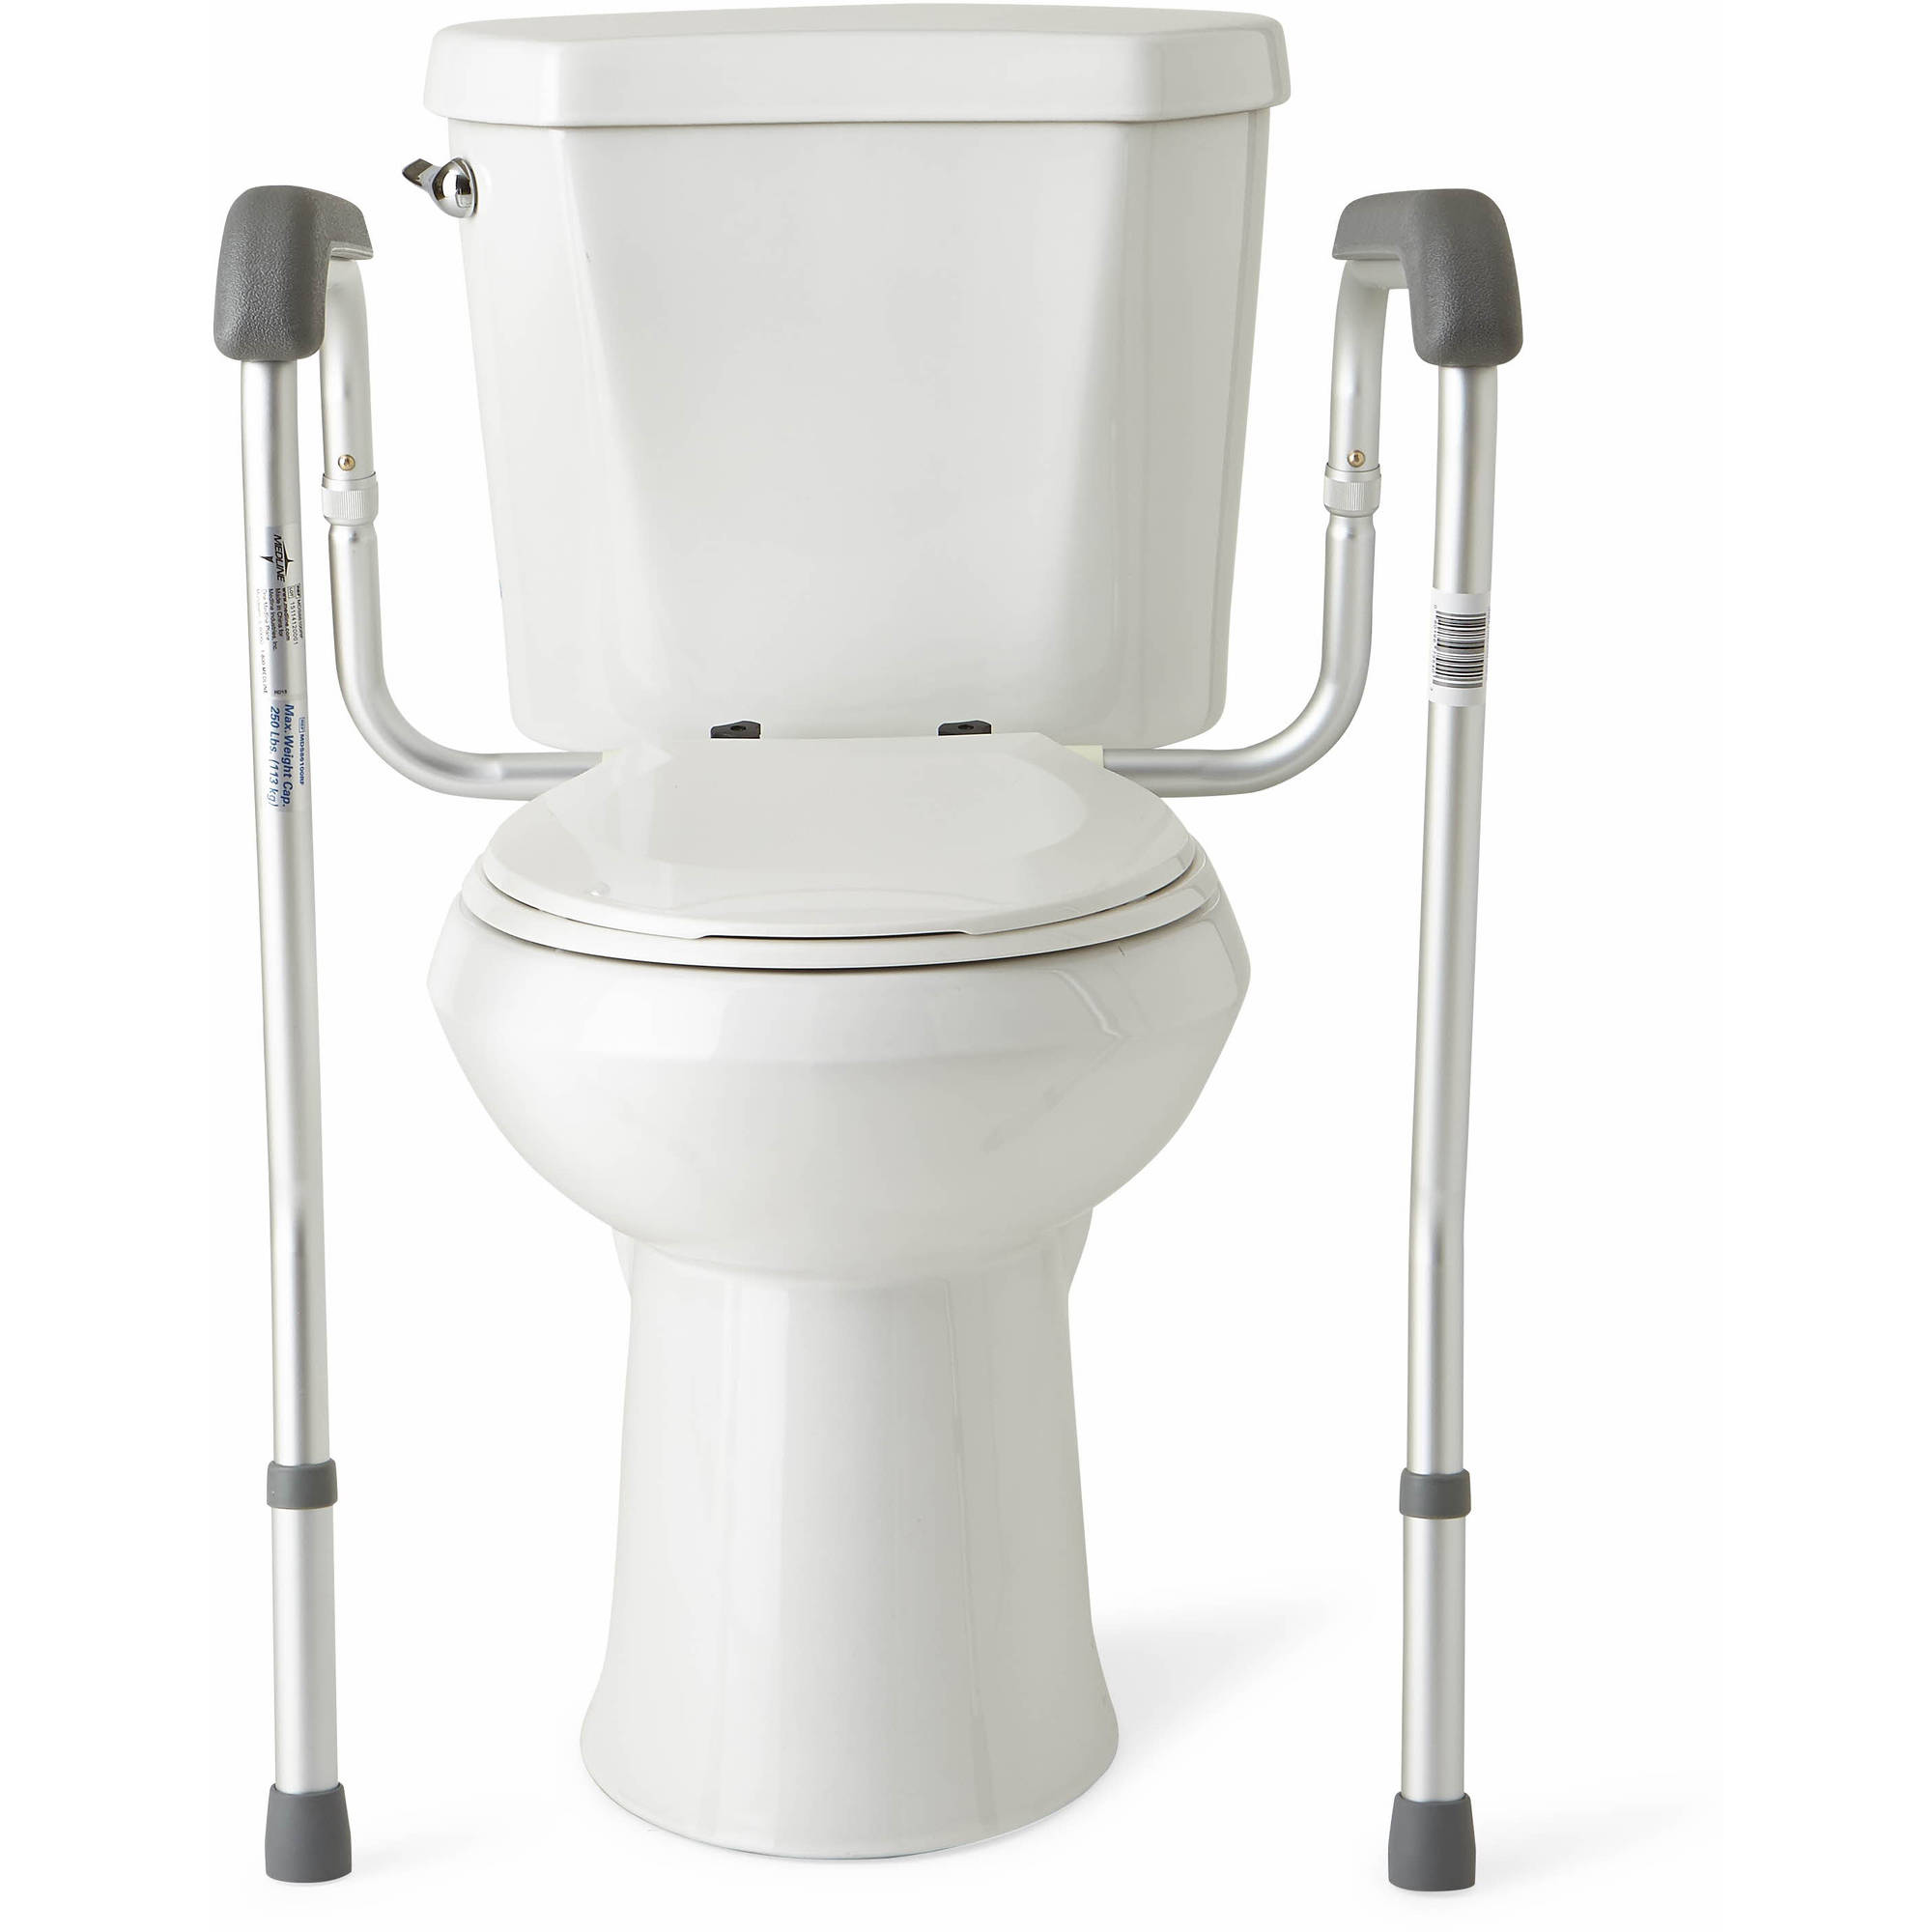 . Medline Toilet Safety Frame Rails   Walmart com